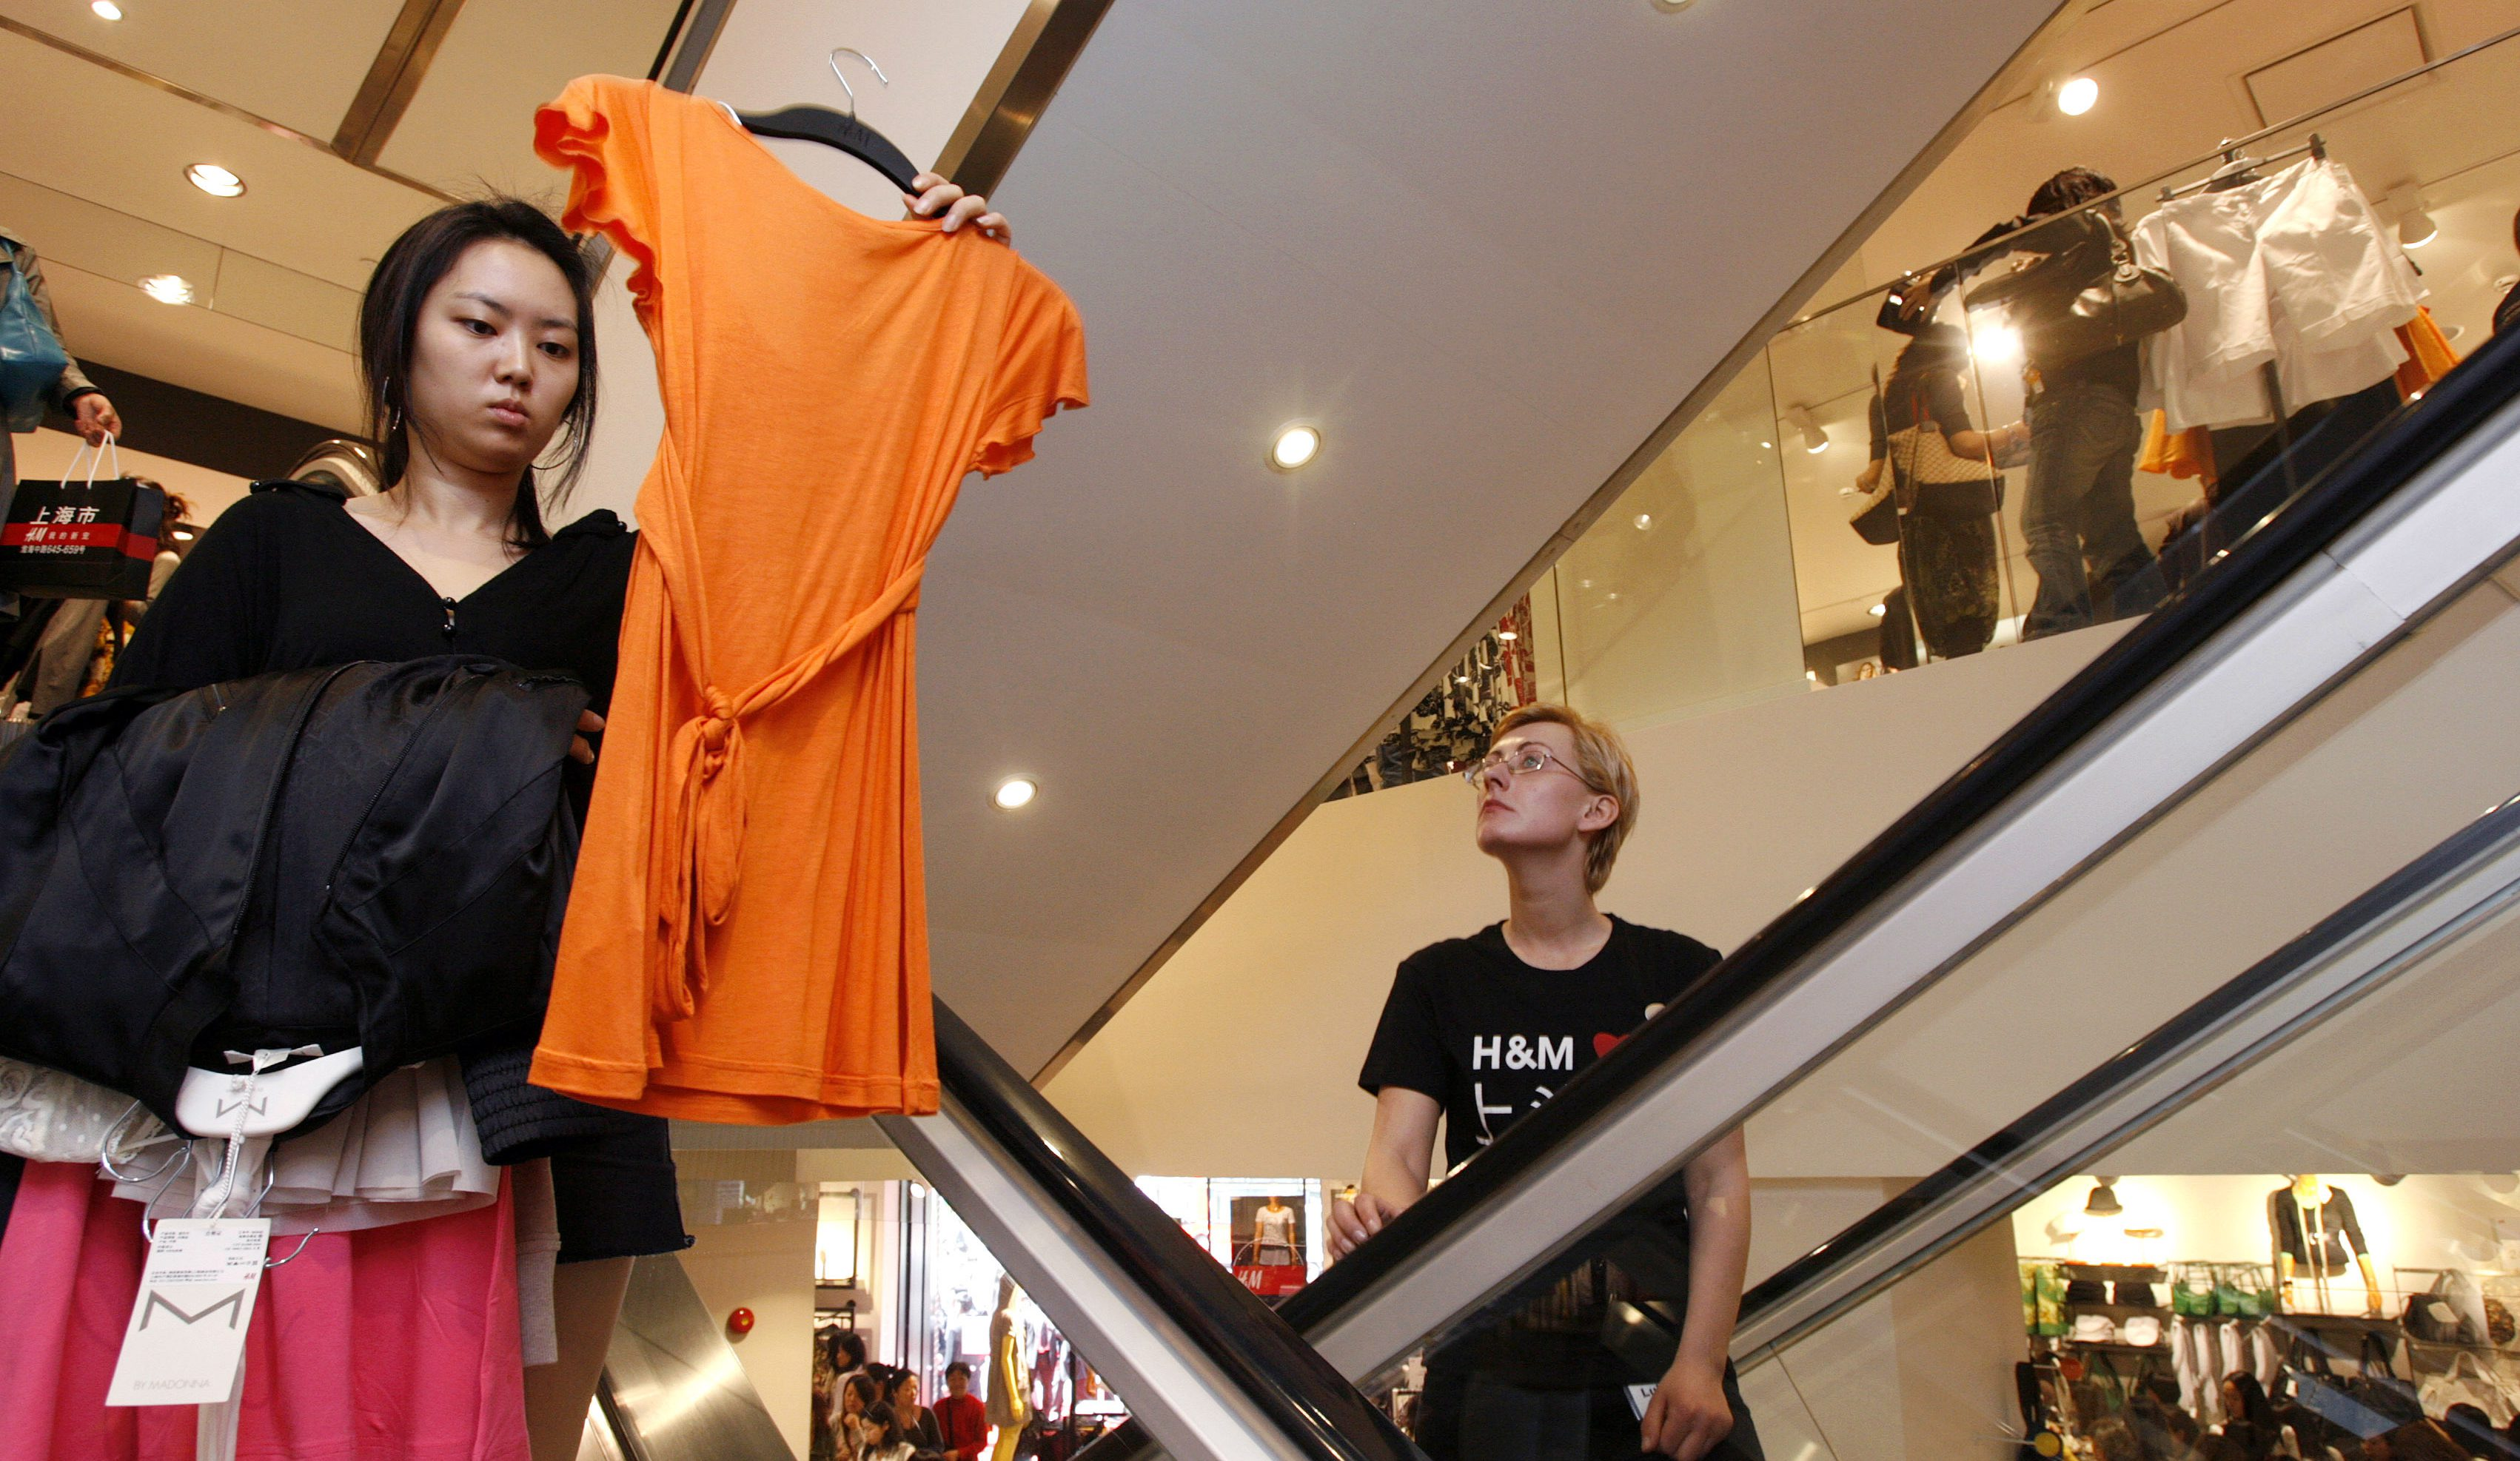 A customer (L) travels down an escalator in the newly opened H&M shop in Shanghai April 12, 2007. Global fashion chain Hennes & Mauritz is planning more stores in Asia and believes that China will eventually be comparable to its European business, its chief executive said on Wednesday. REUTERS/Nir Elias (CHINA) - GM1DVAGLXPAA